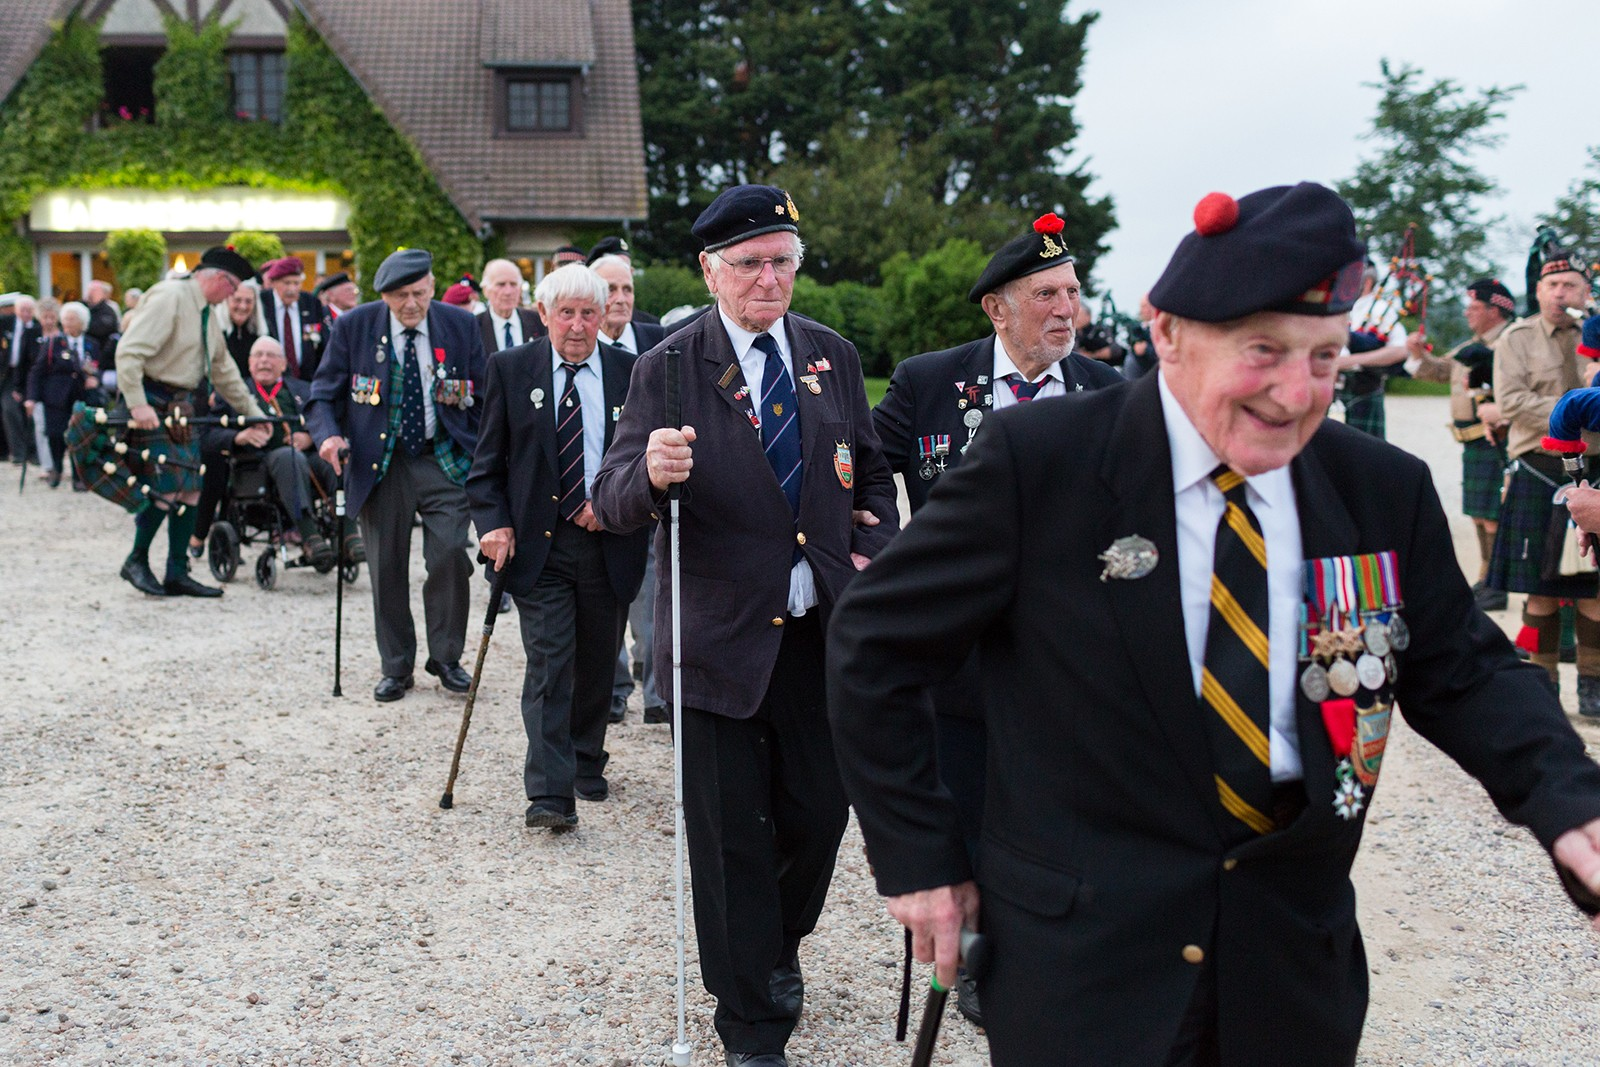 D-Day Veterans in Normandy